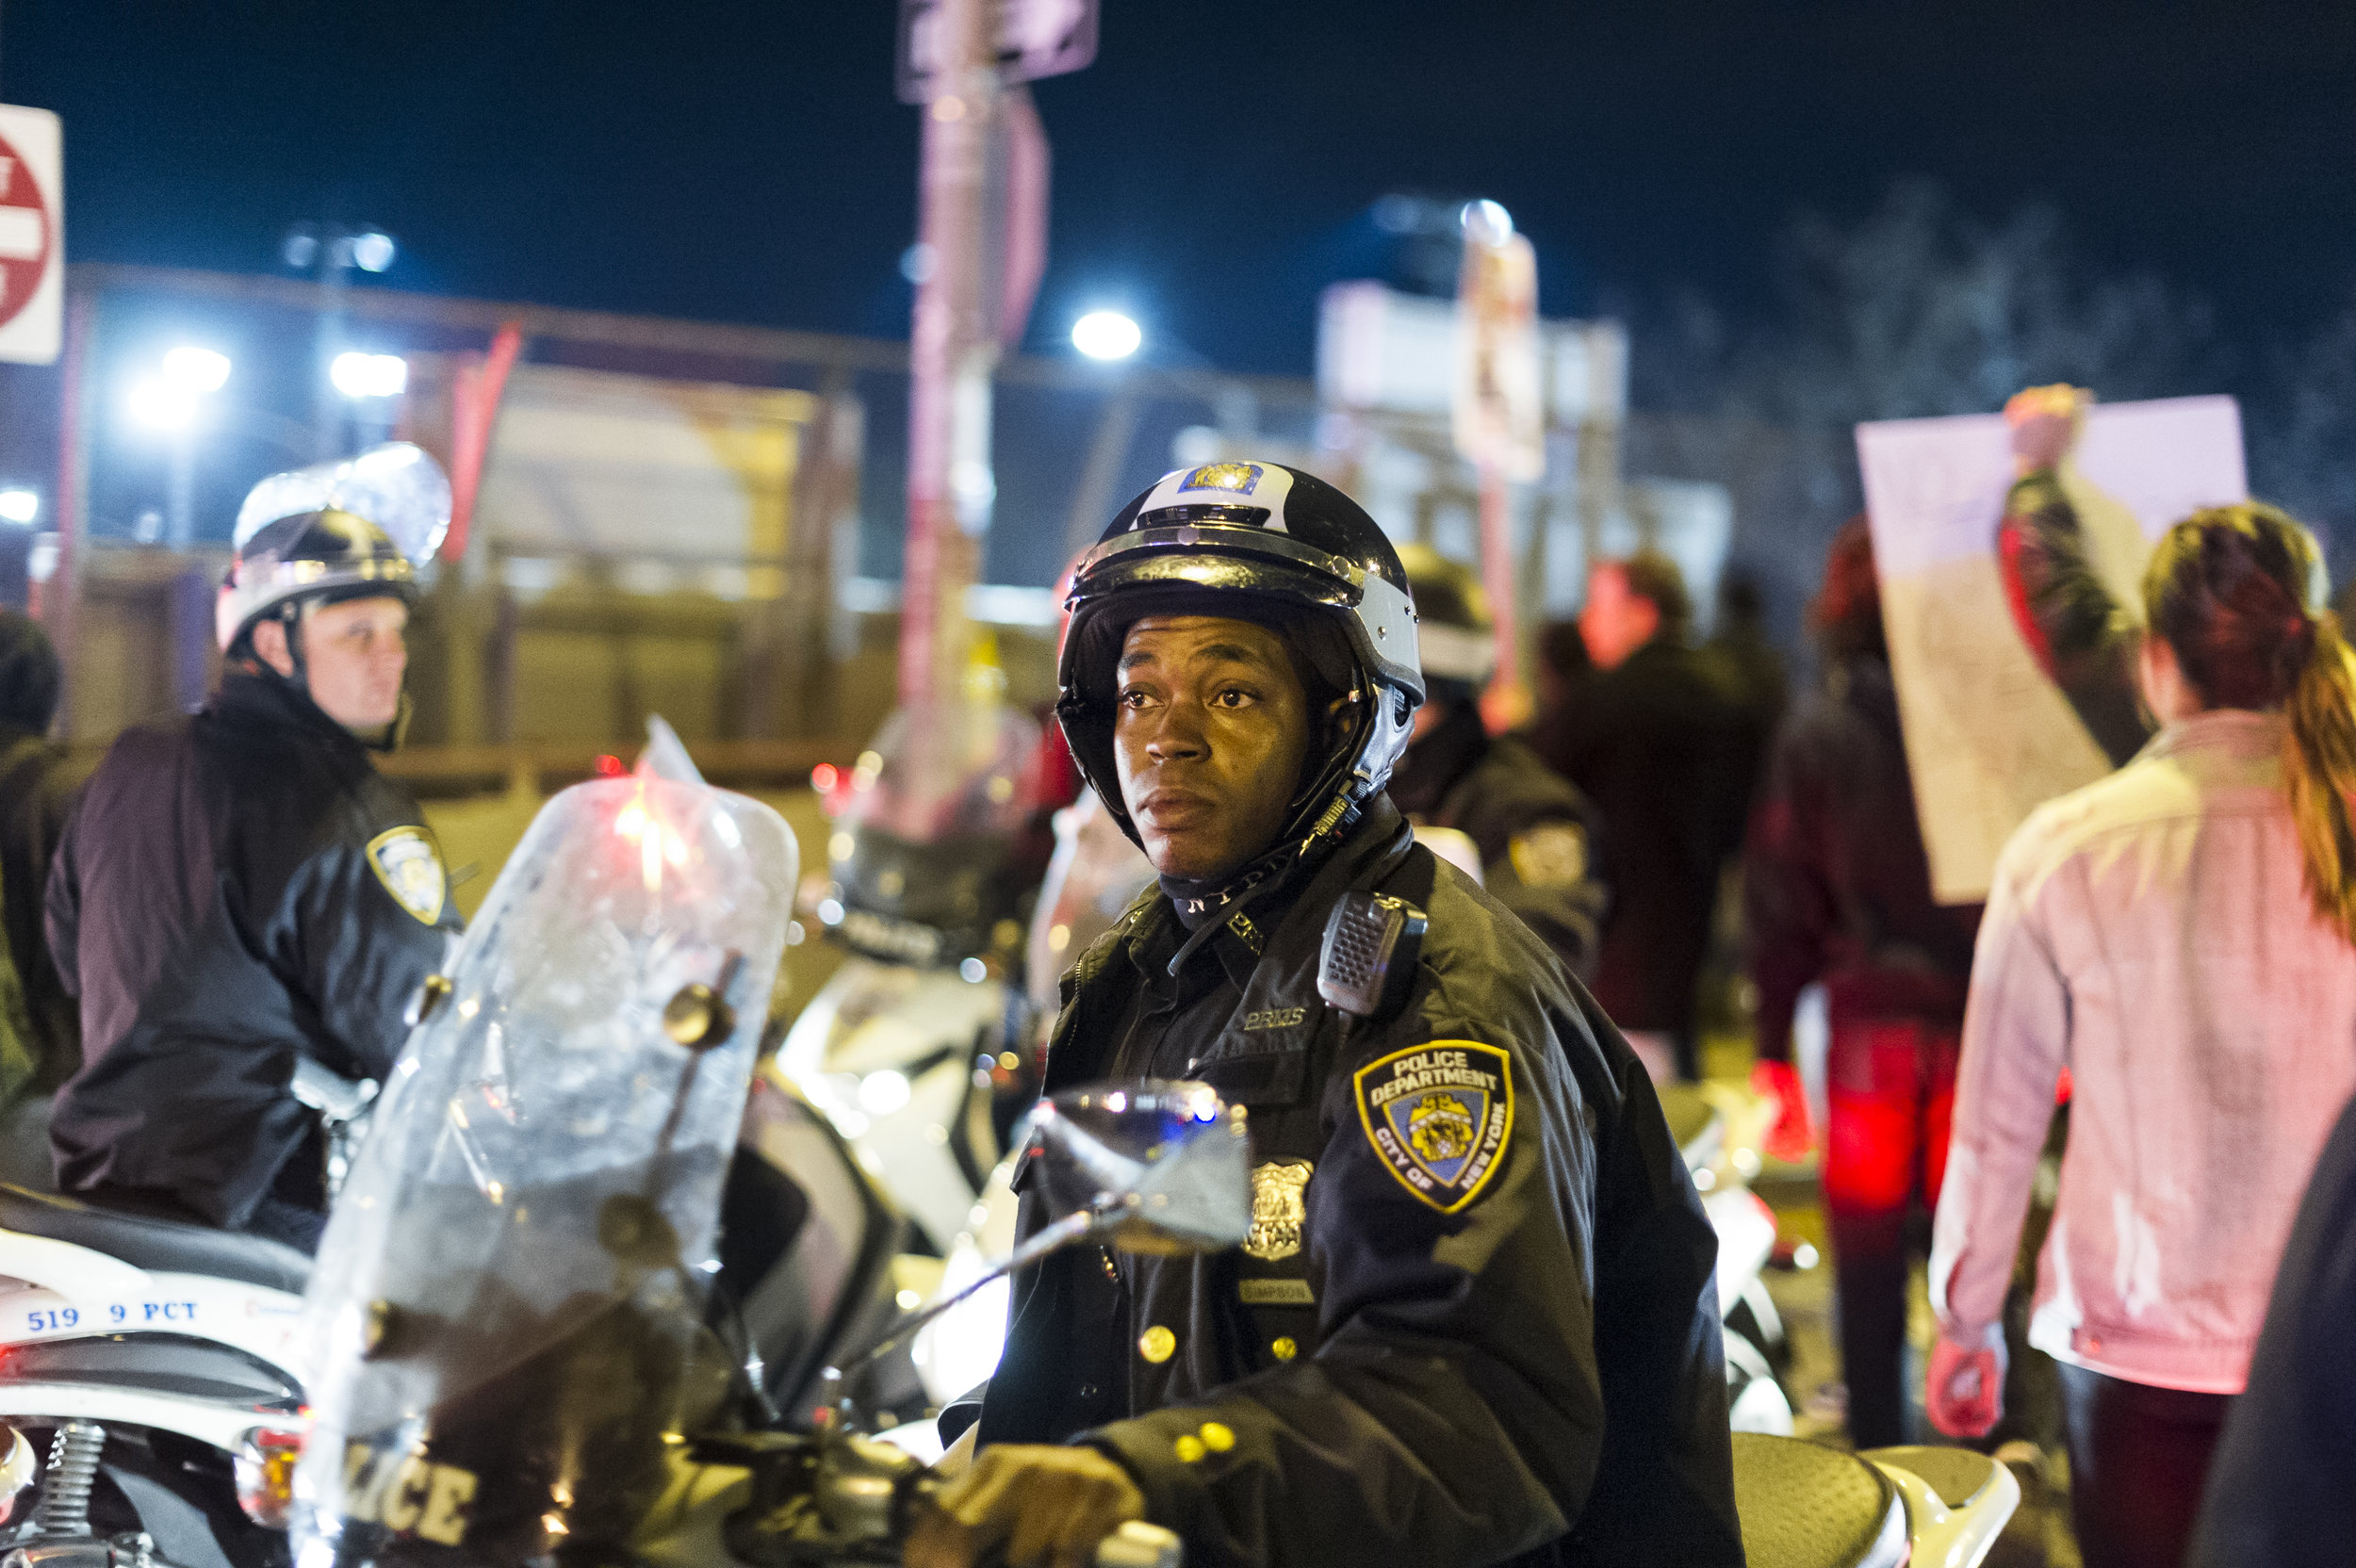 An NYPD officer looks on as FDR Drive is shut down by demonstrators on November 25th, 2014 following a St. Louis grand jury's decision to not indict Officer Darren Wilson in the killing of Michael Brown.